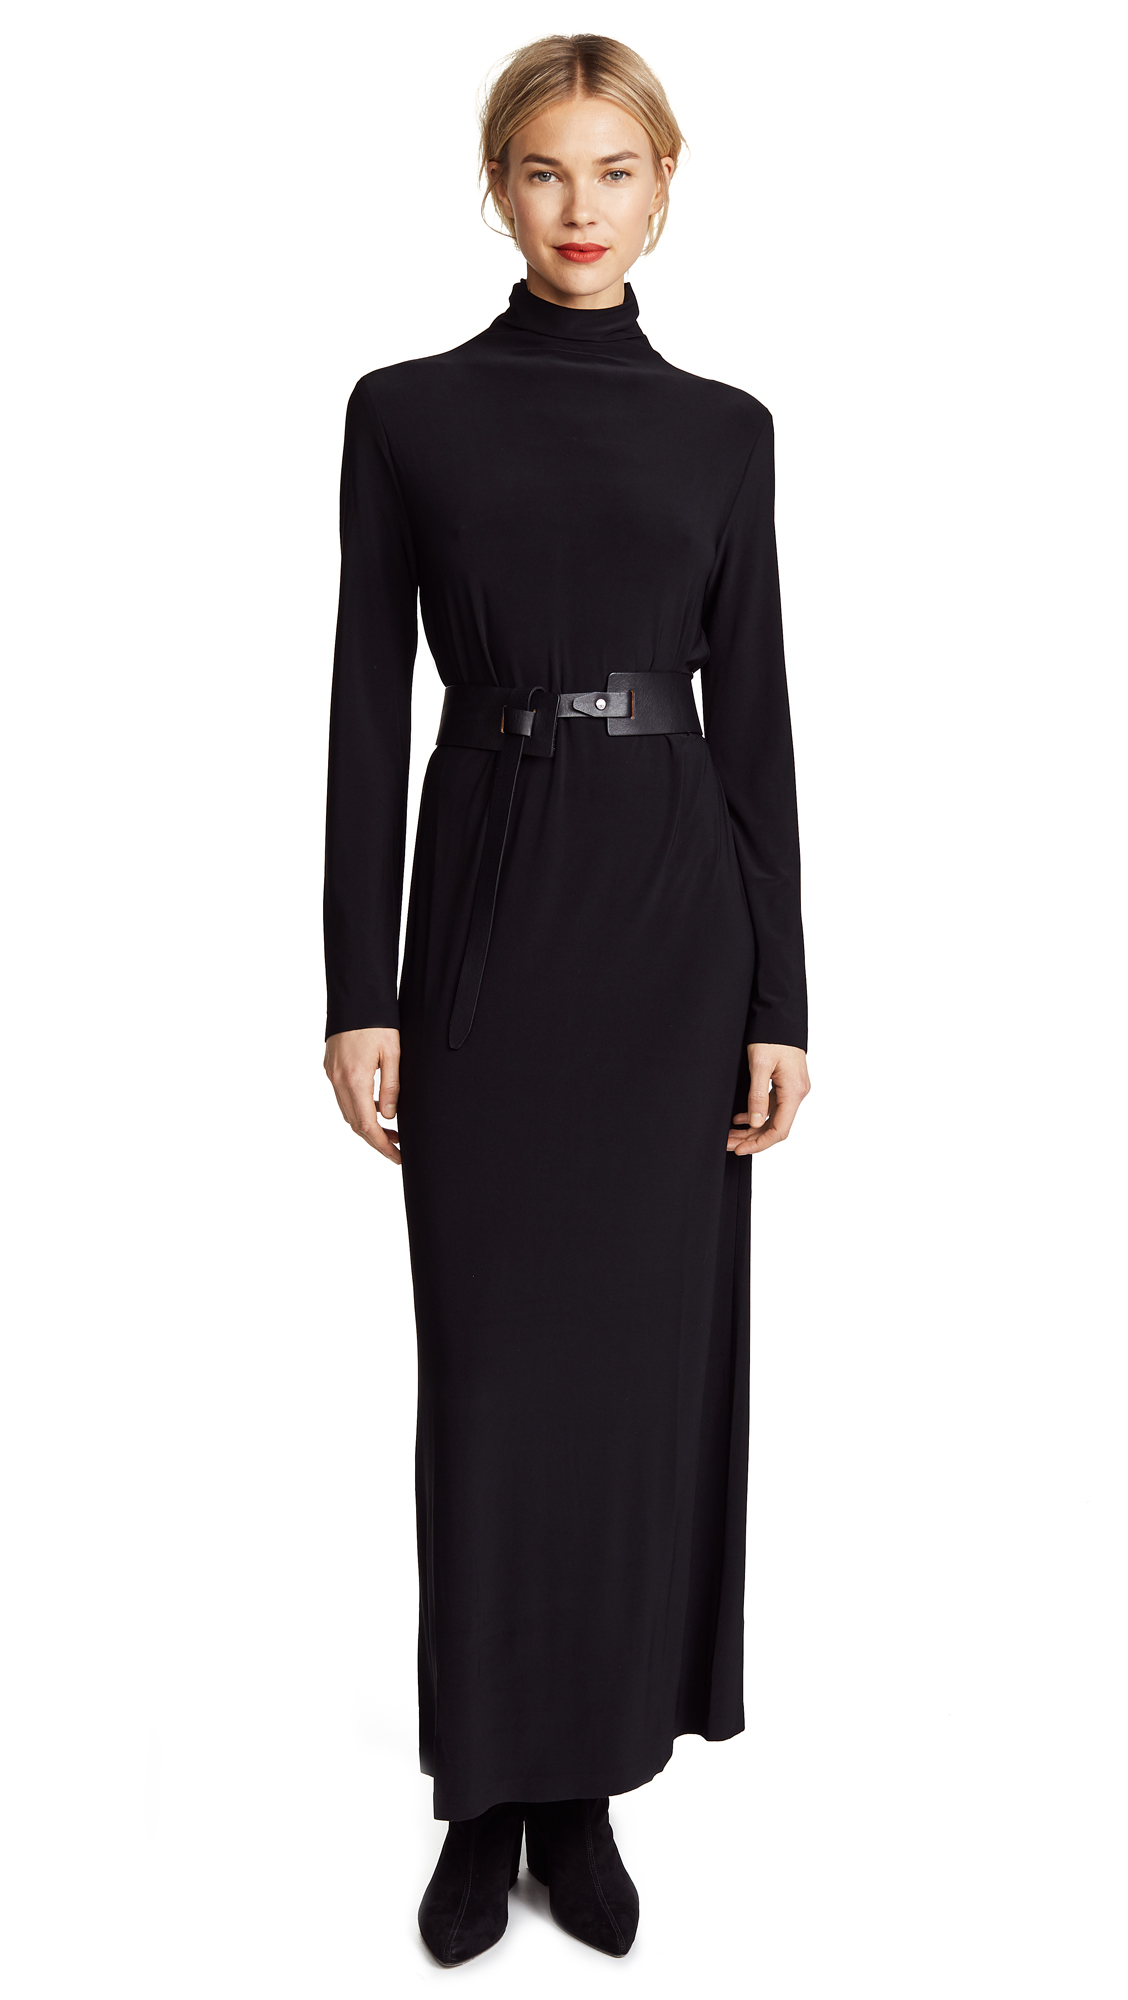 Norma Kamali Kamali Kulture Go Turtleneck Maxi Dress - Black